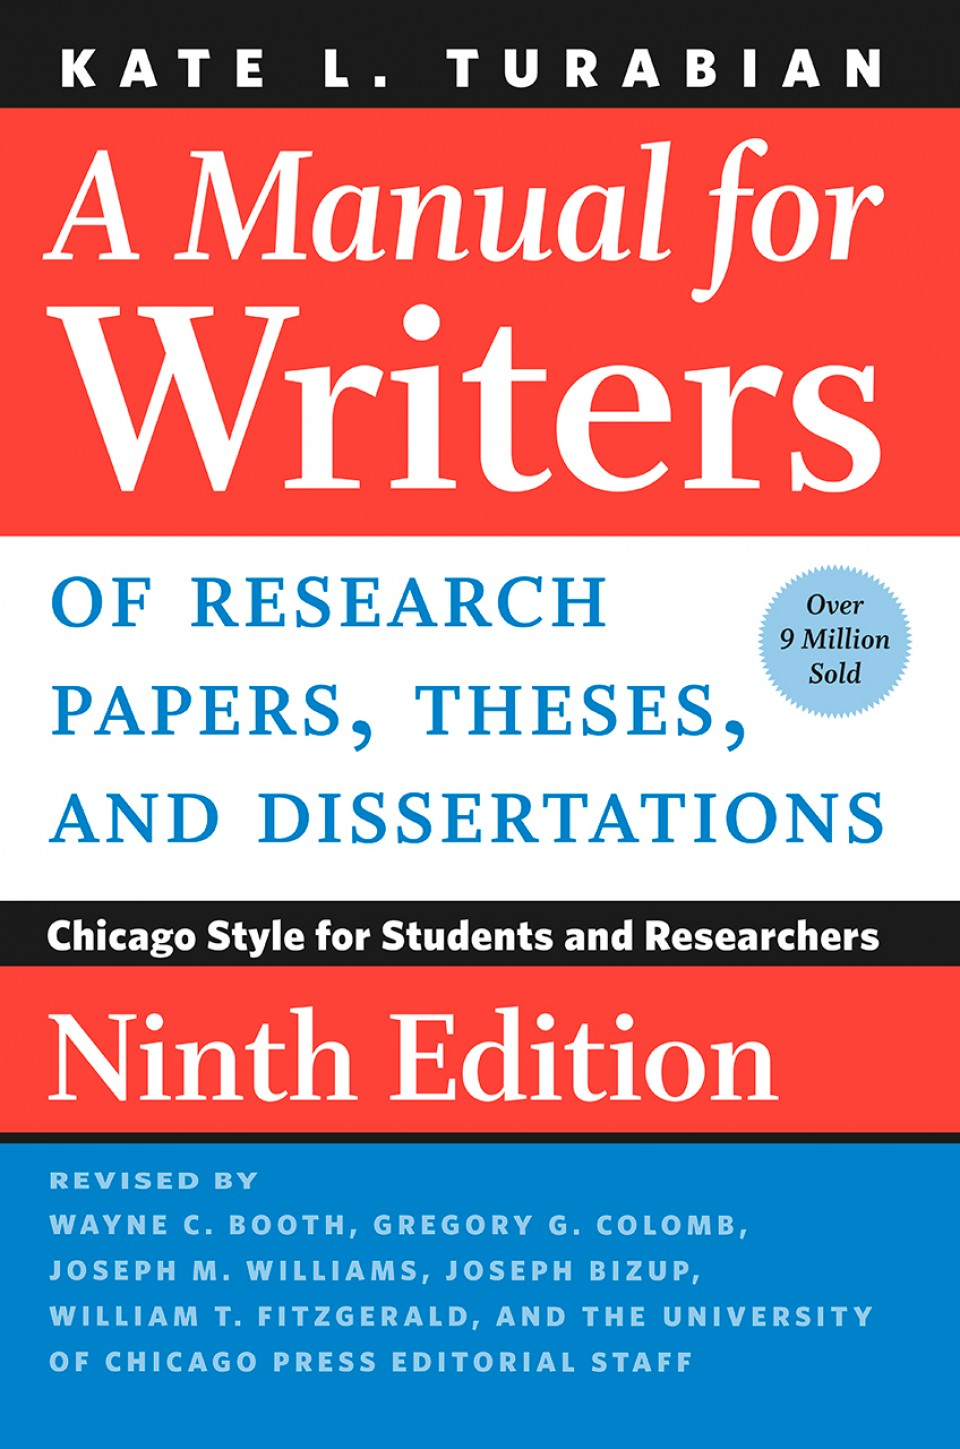 001 Research Paper Manual For Writers Of Papers Theses And Dissertations Amazing A Turabian Pdf 960